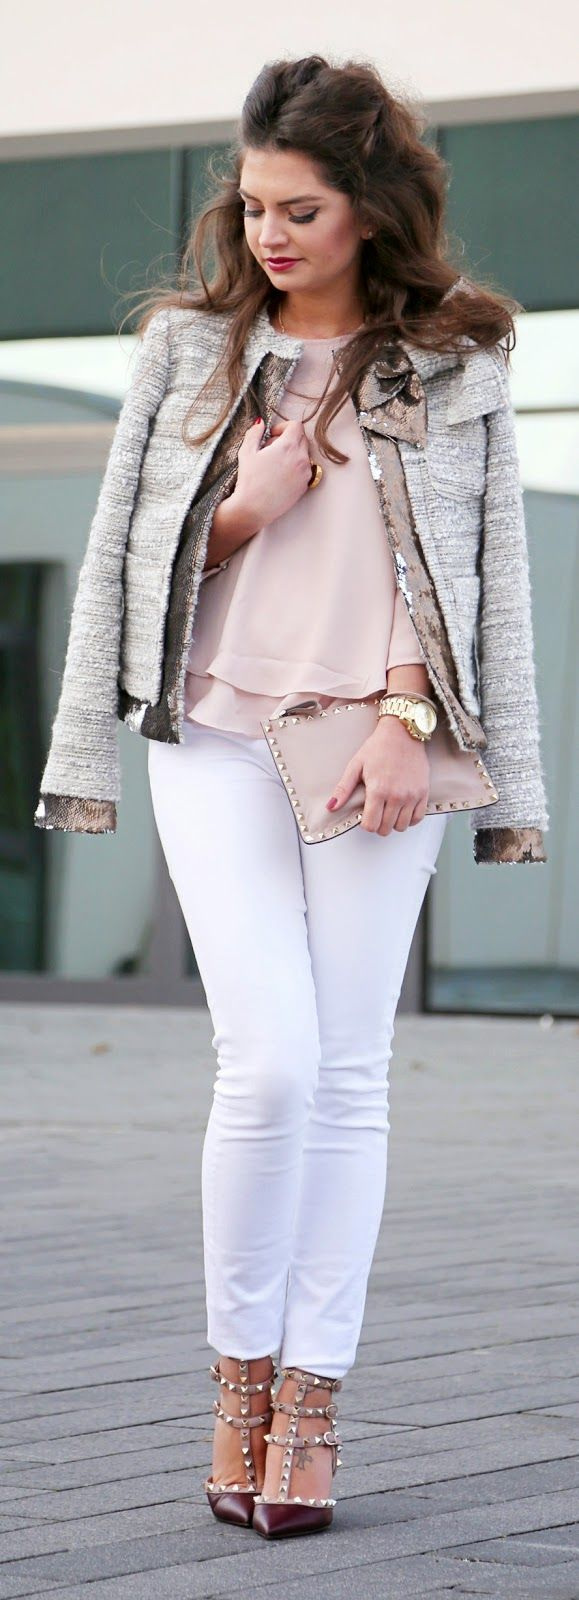 White Skinny Jeans In Winter